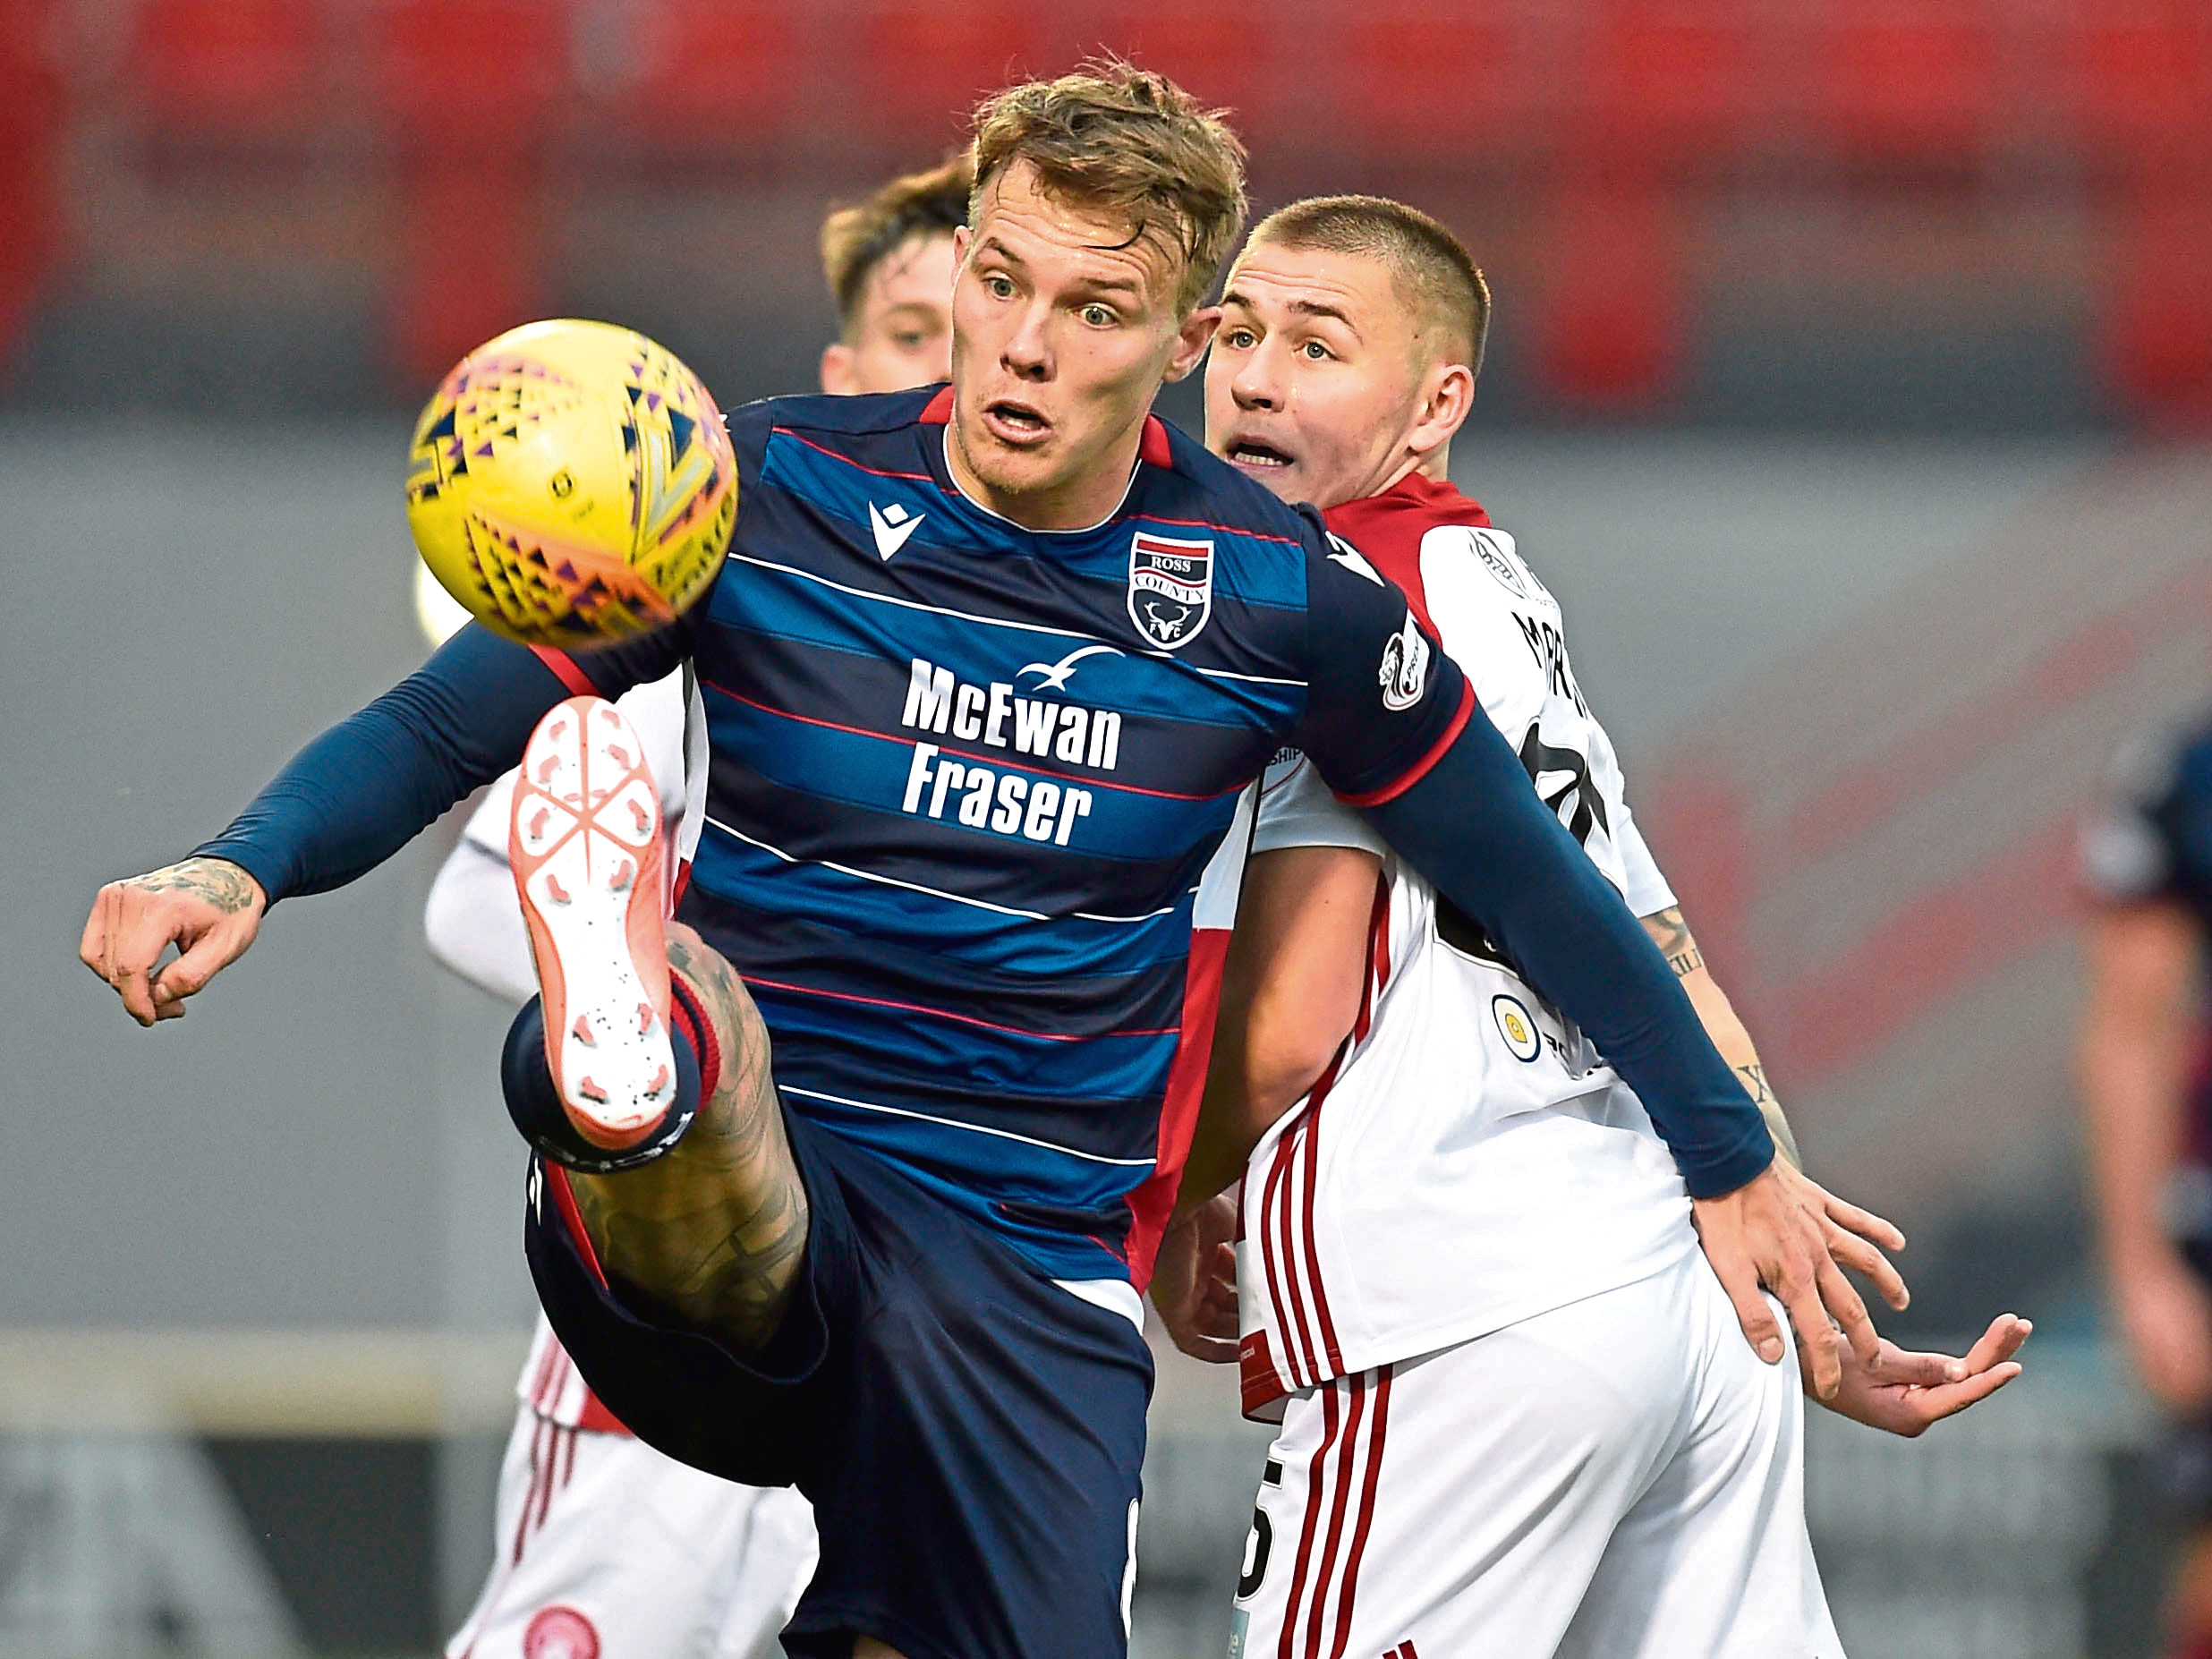 Ross County's Lee Erwin, left, competes with Scott Martin during the Ladbrokes Premiership match between Hamilton and Ross County.